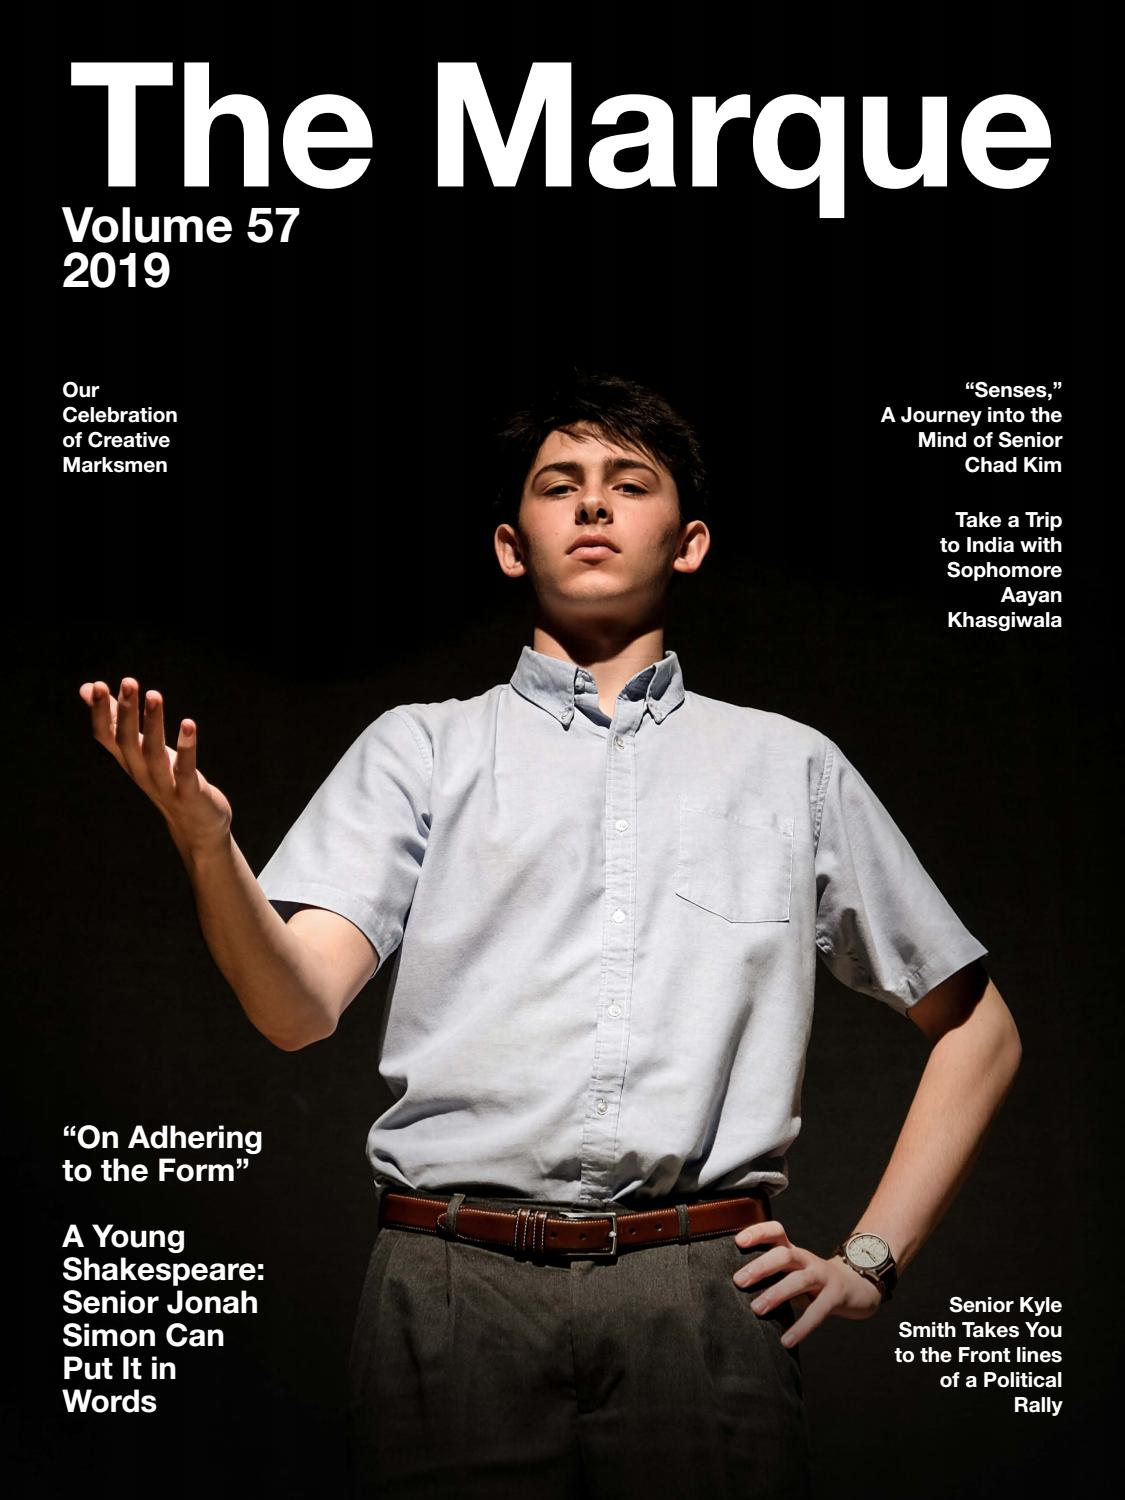 The Marque Volume 57 2018 2019 By St Mark S School Of Texas Issuu